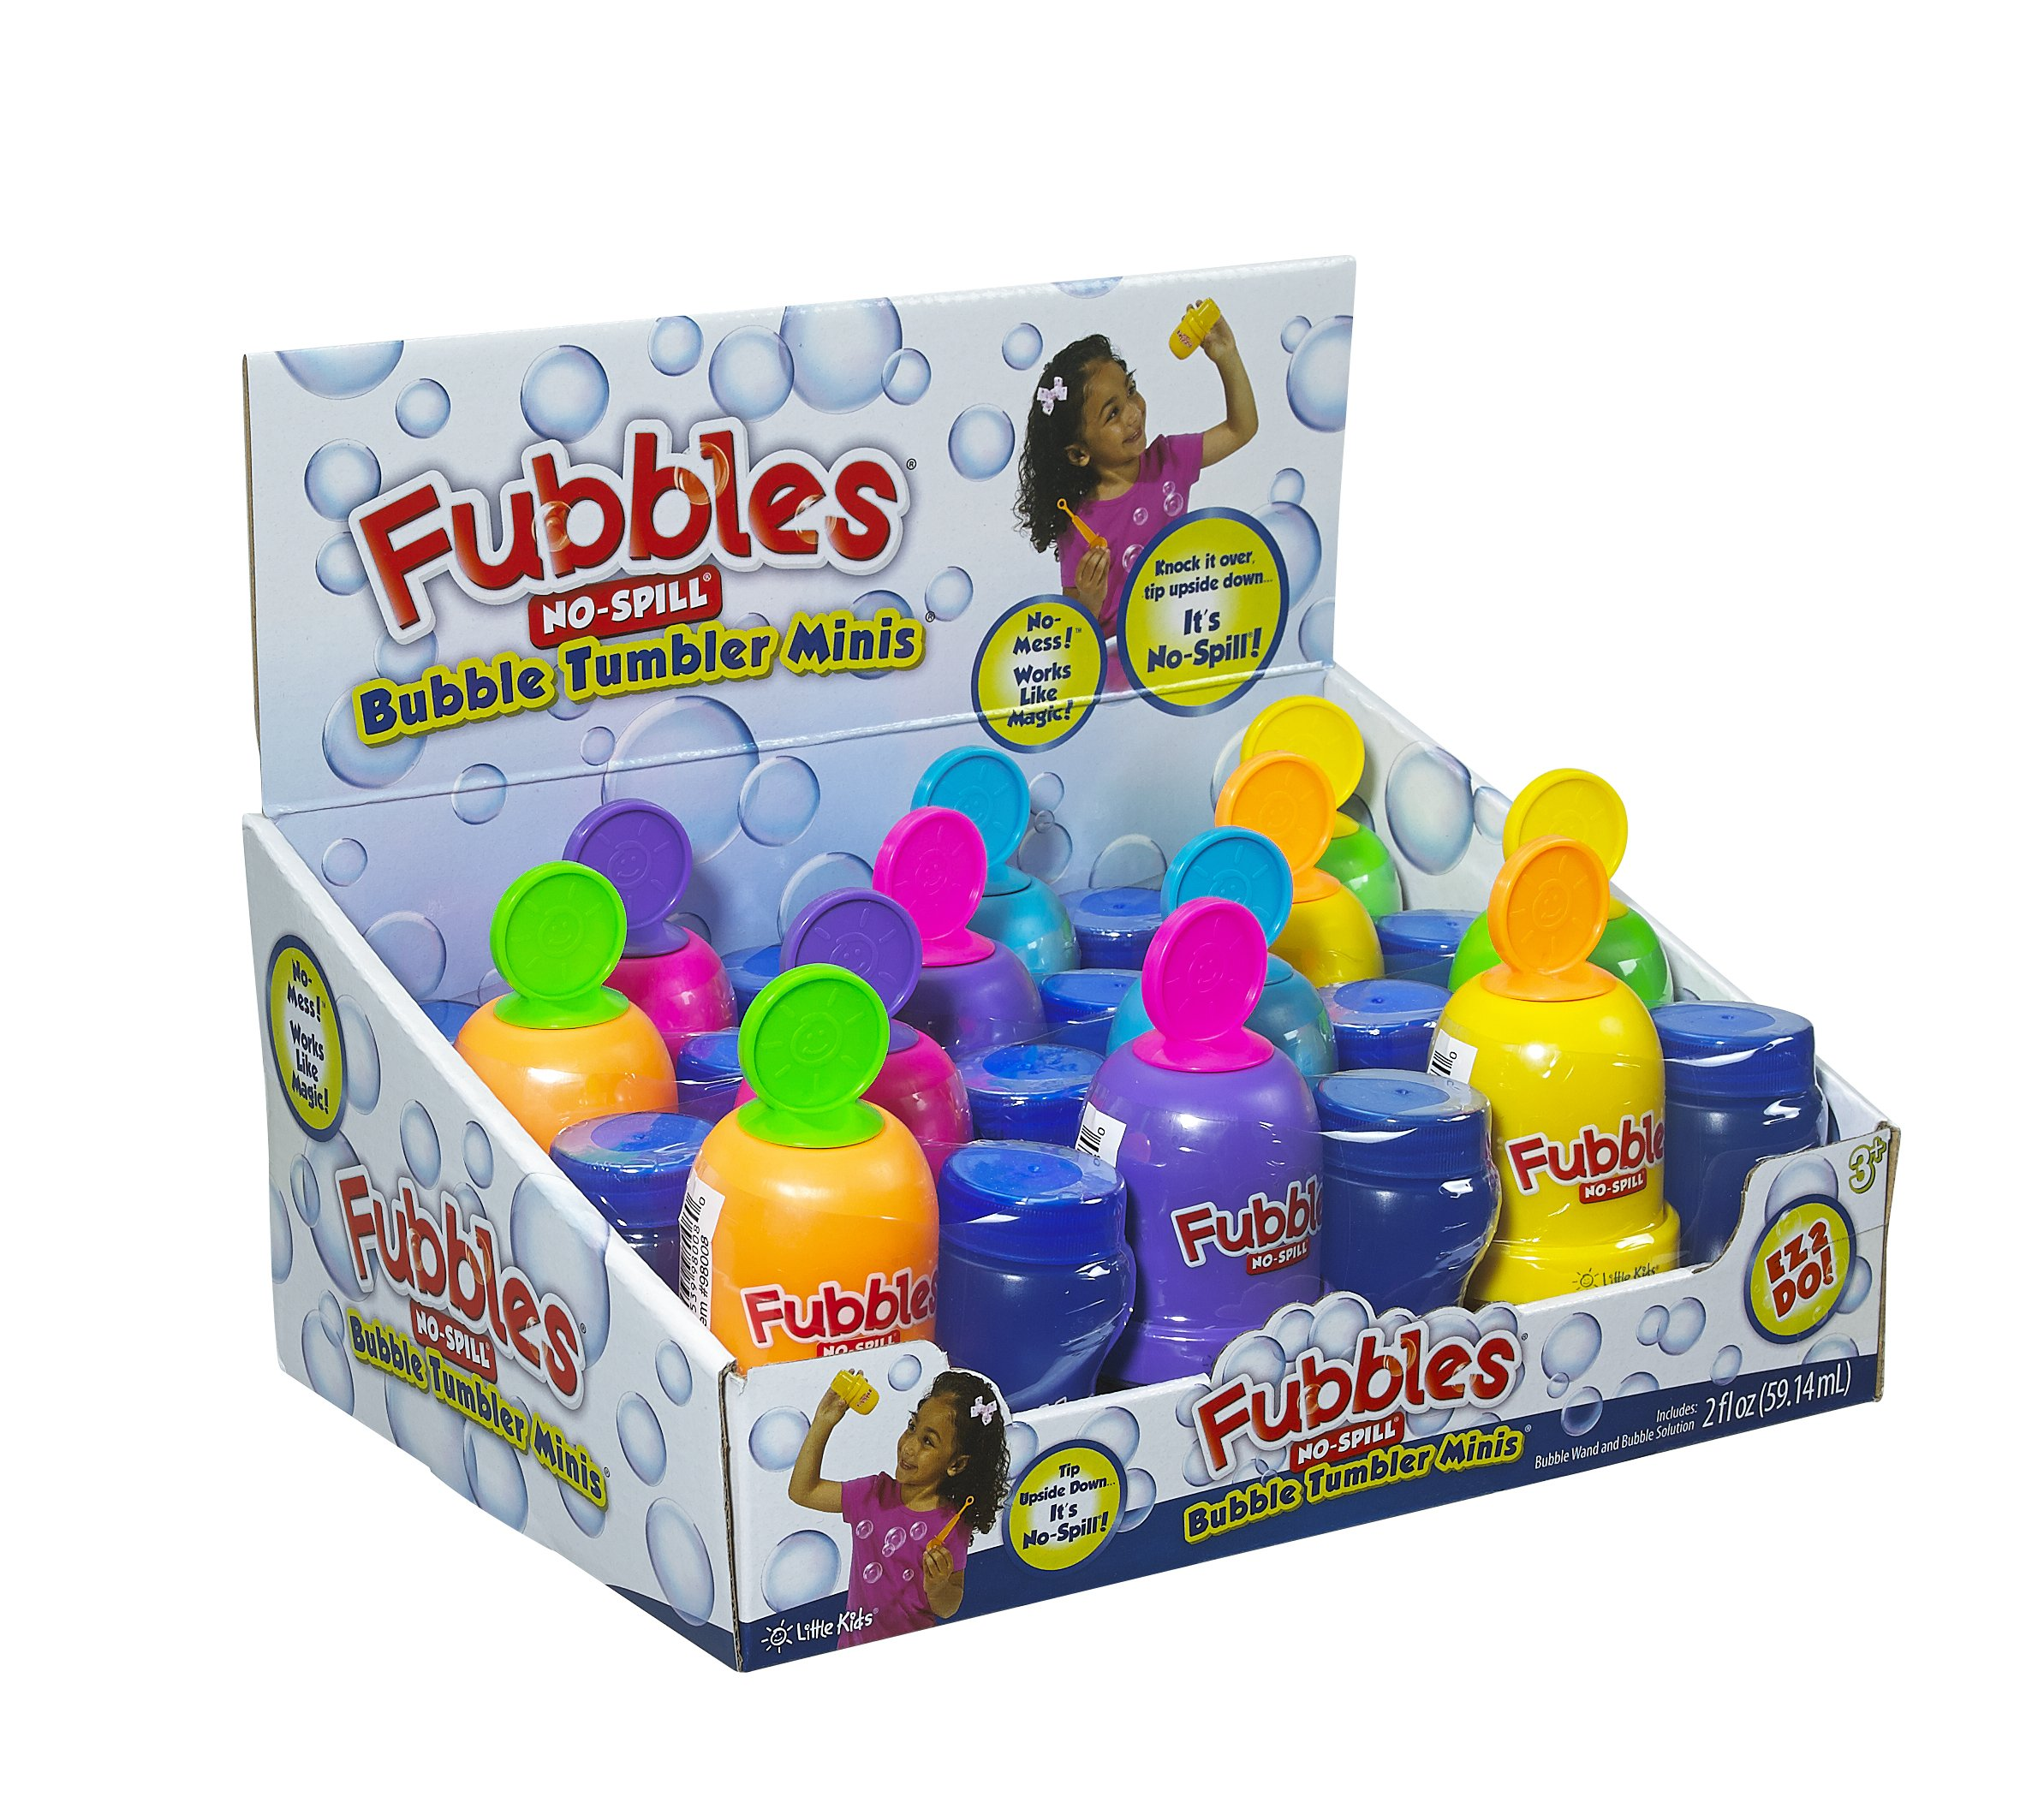 Little Kids Fubbles No-Spill Bubble Tumbler Minis Party Favor 12 pack, Includes 2oz bubble solution and a wand per bottle (assorted colors) by Little Kids